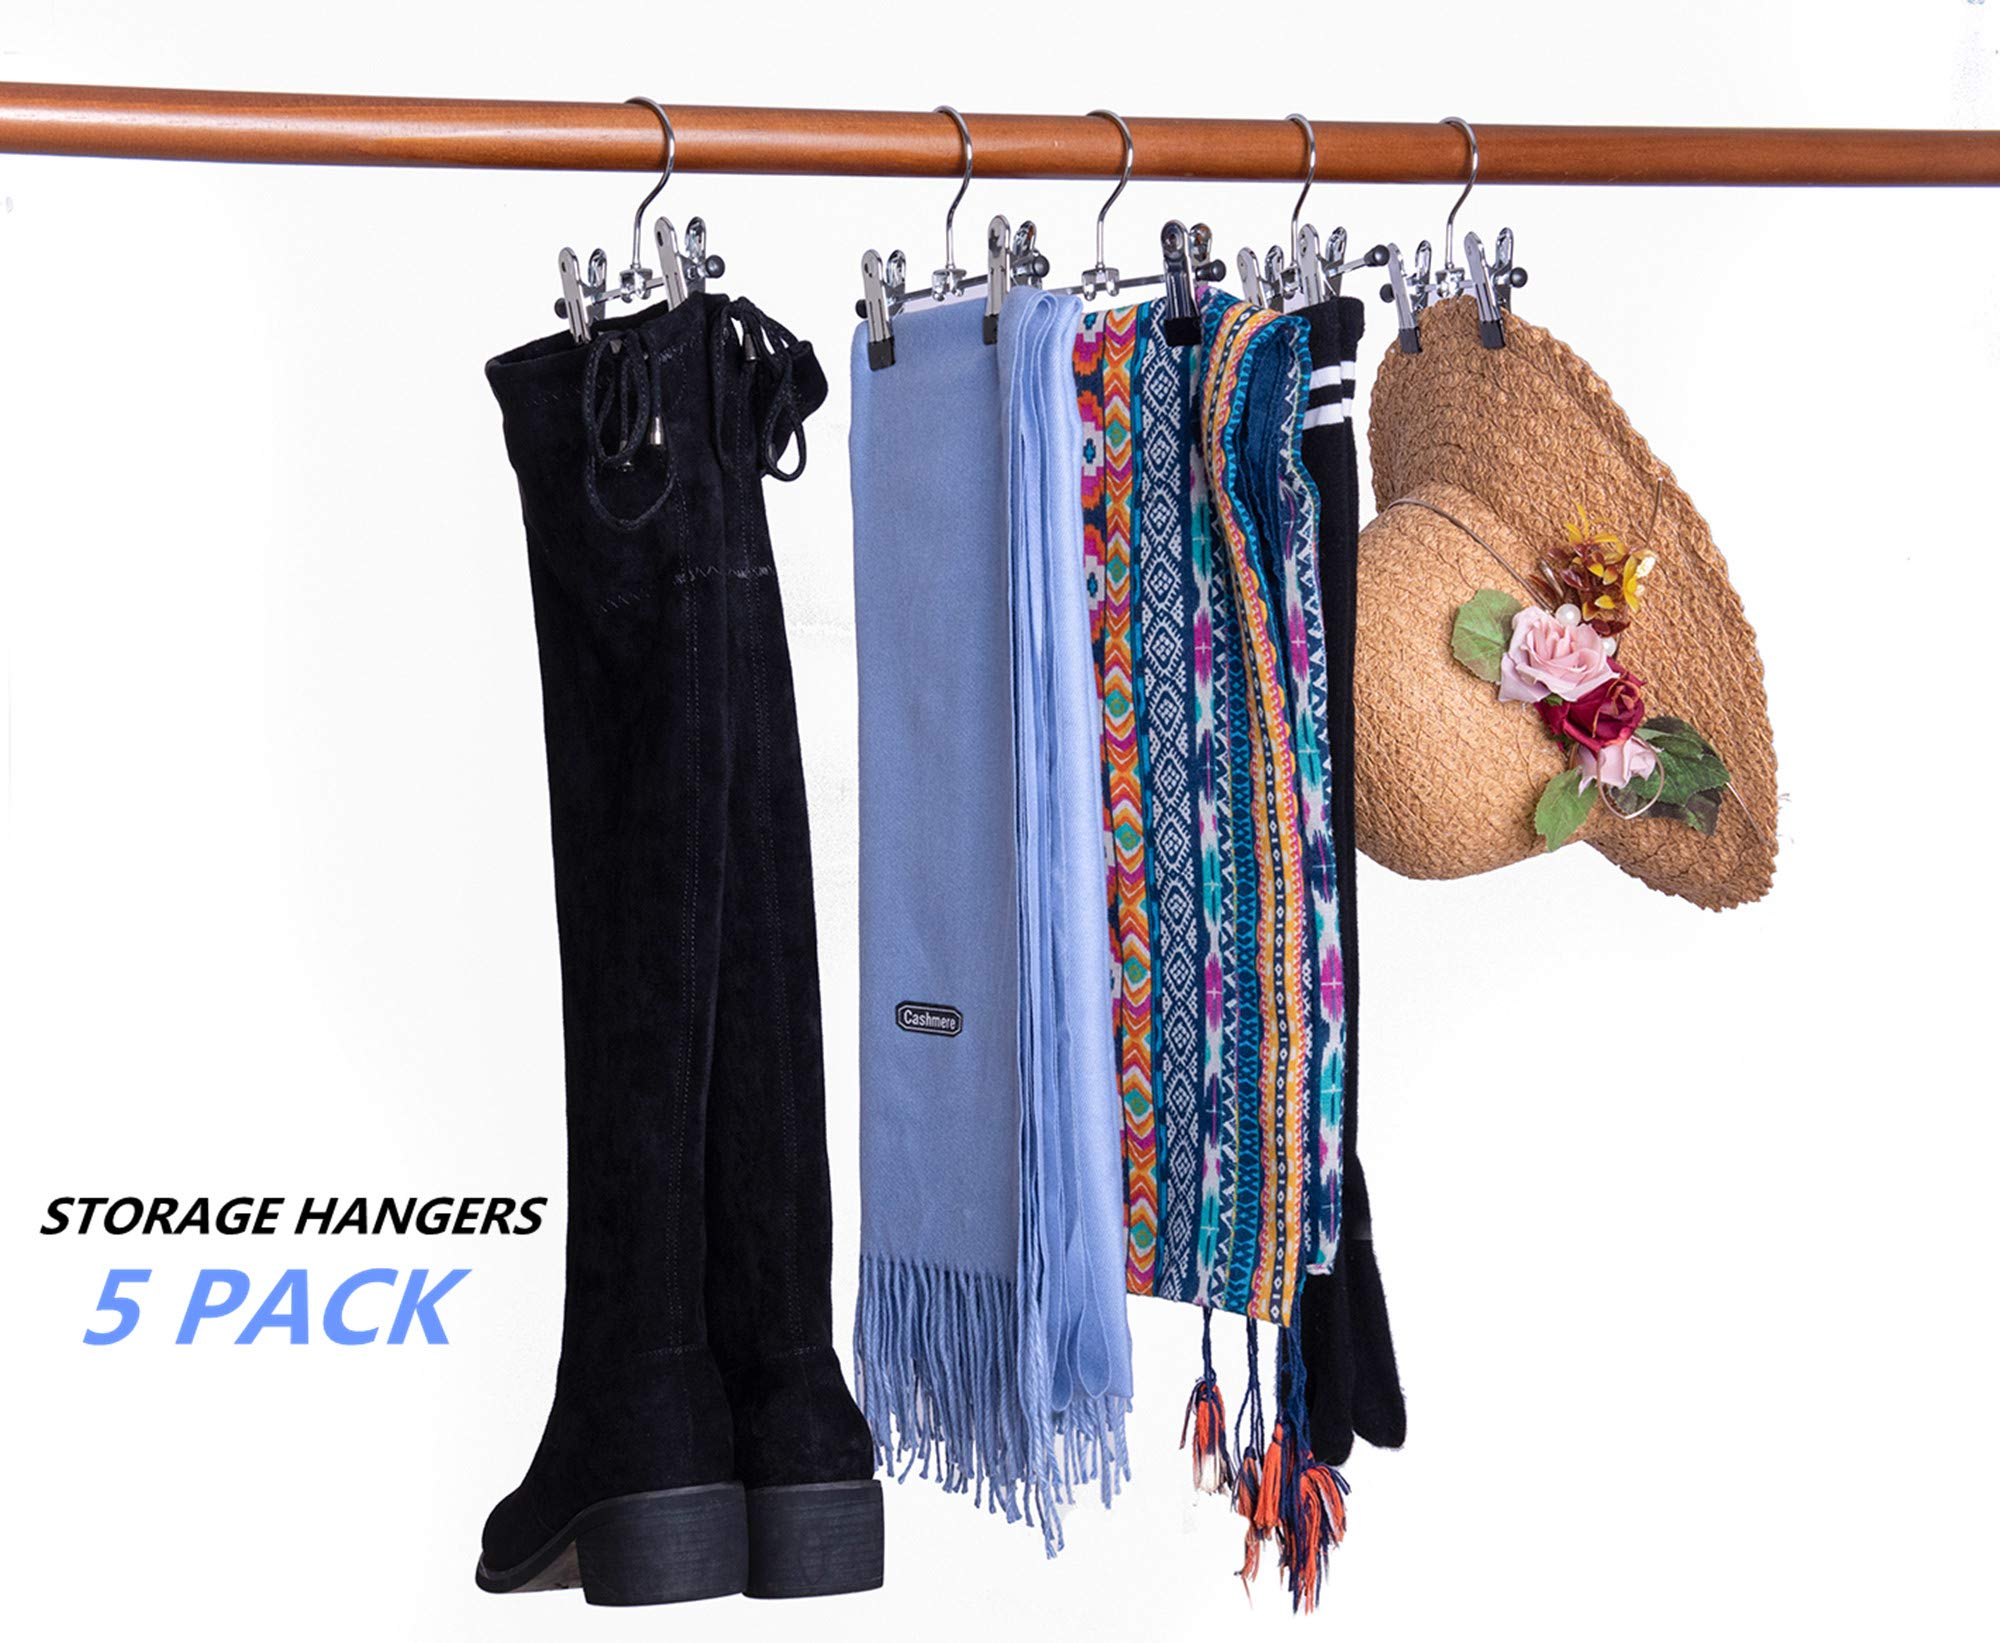 Portable Multfunctional Hangers for Socks Hats Towels Amber Home 6 Metal Boots Hangers with Clips 20 Pack